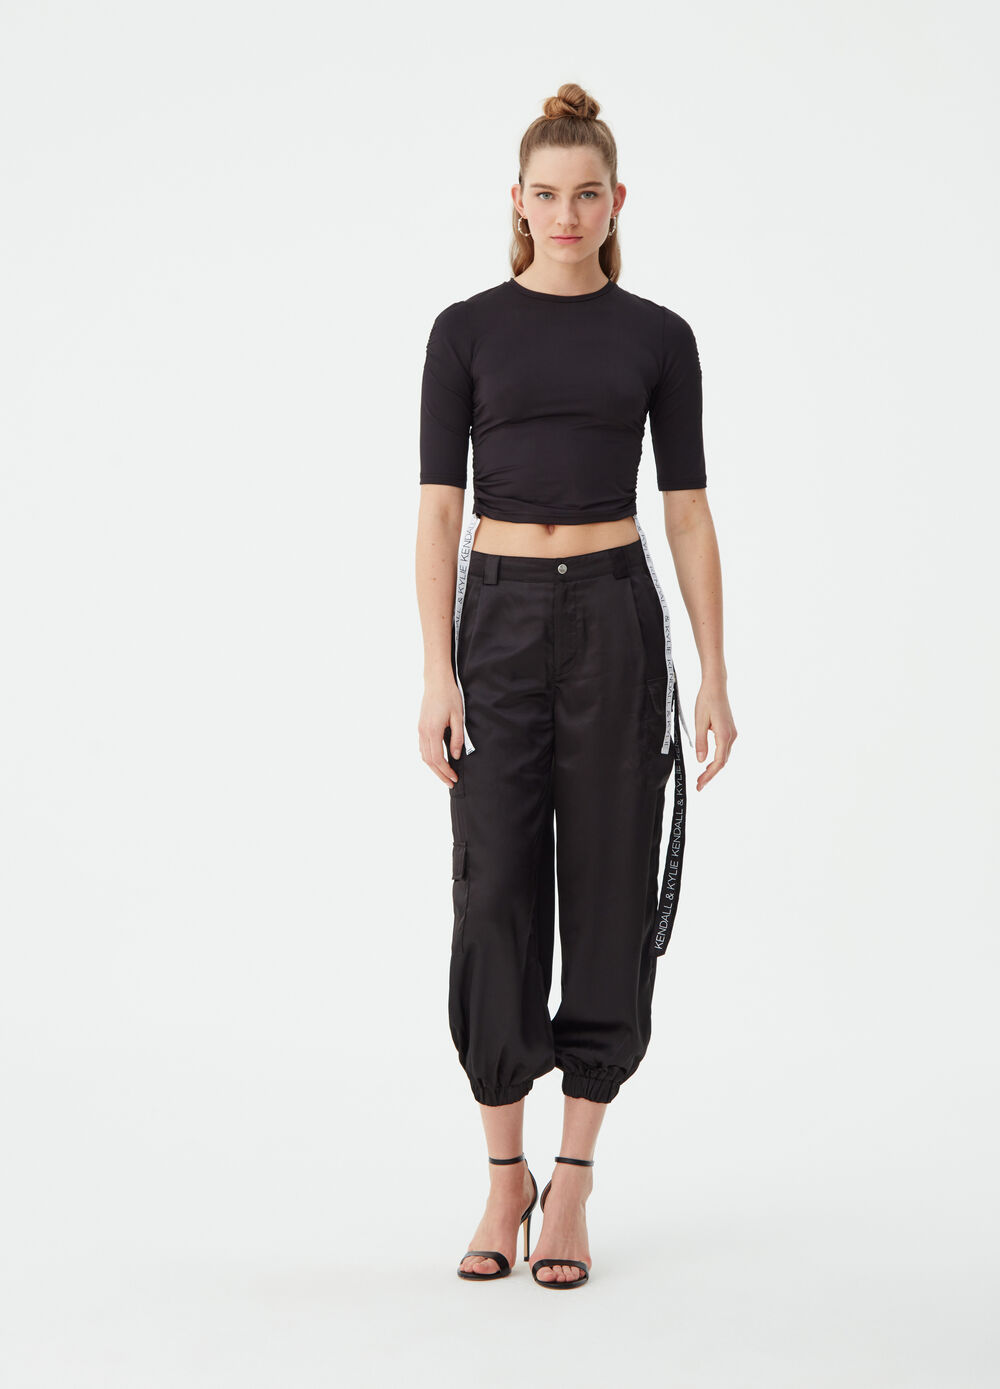 K+K for OVS satin-effect cargo trousers